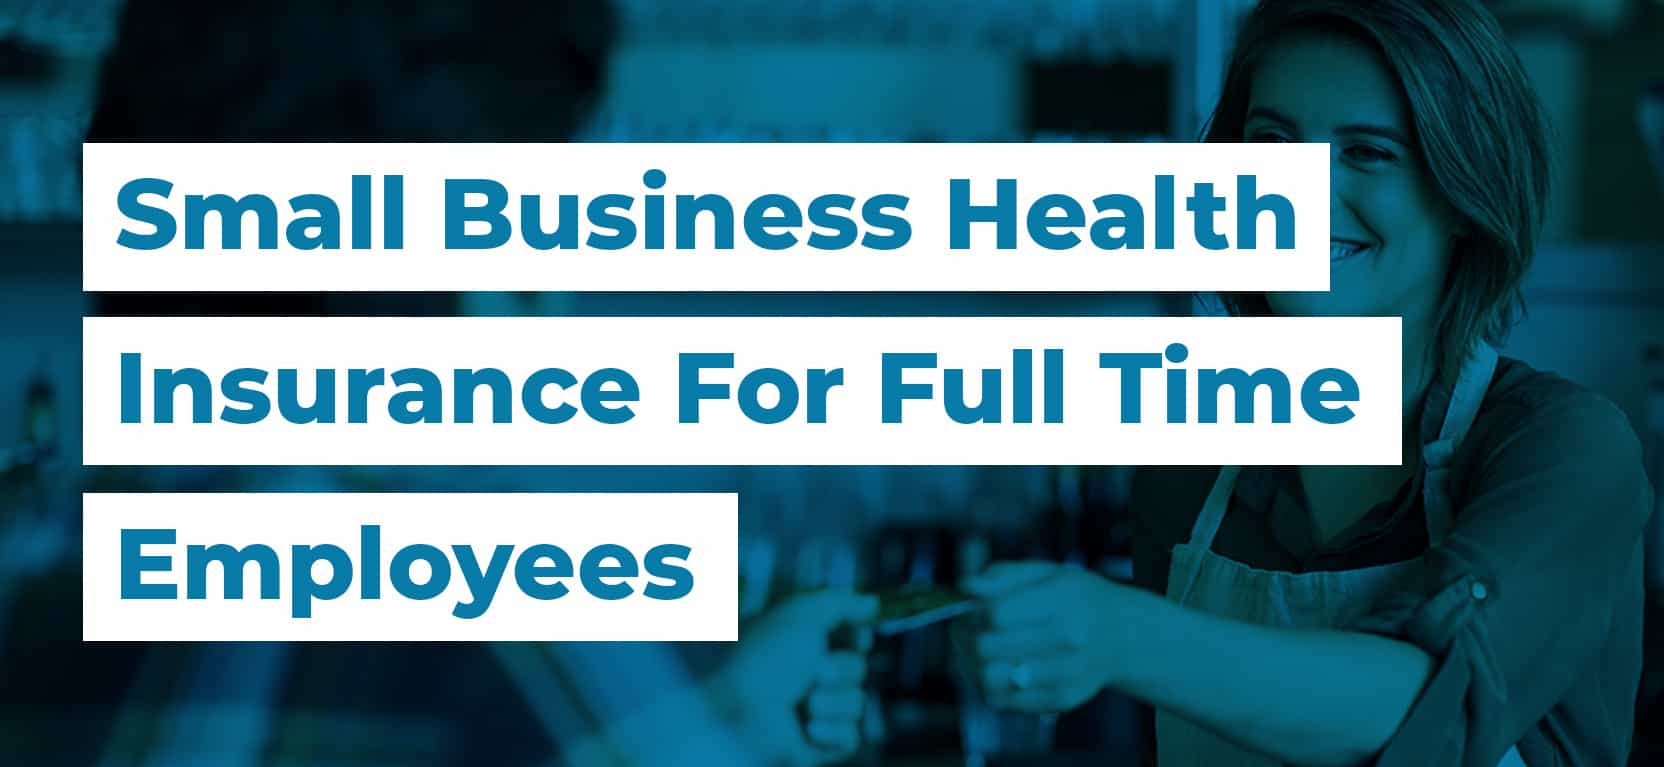 18 Small Business Health Insurance For Full Time Employees2